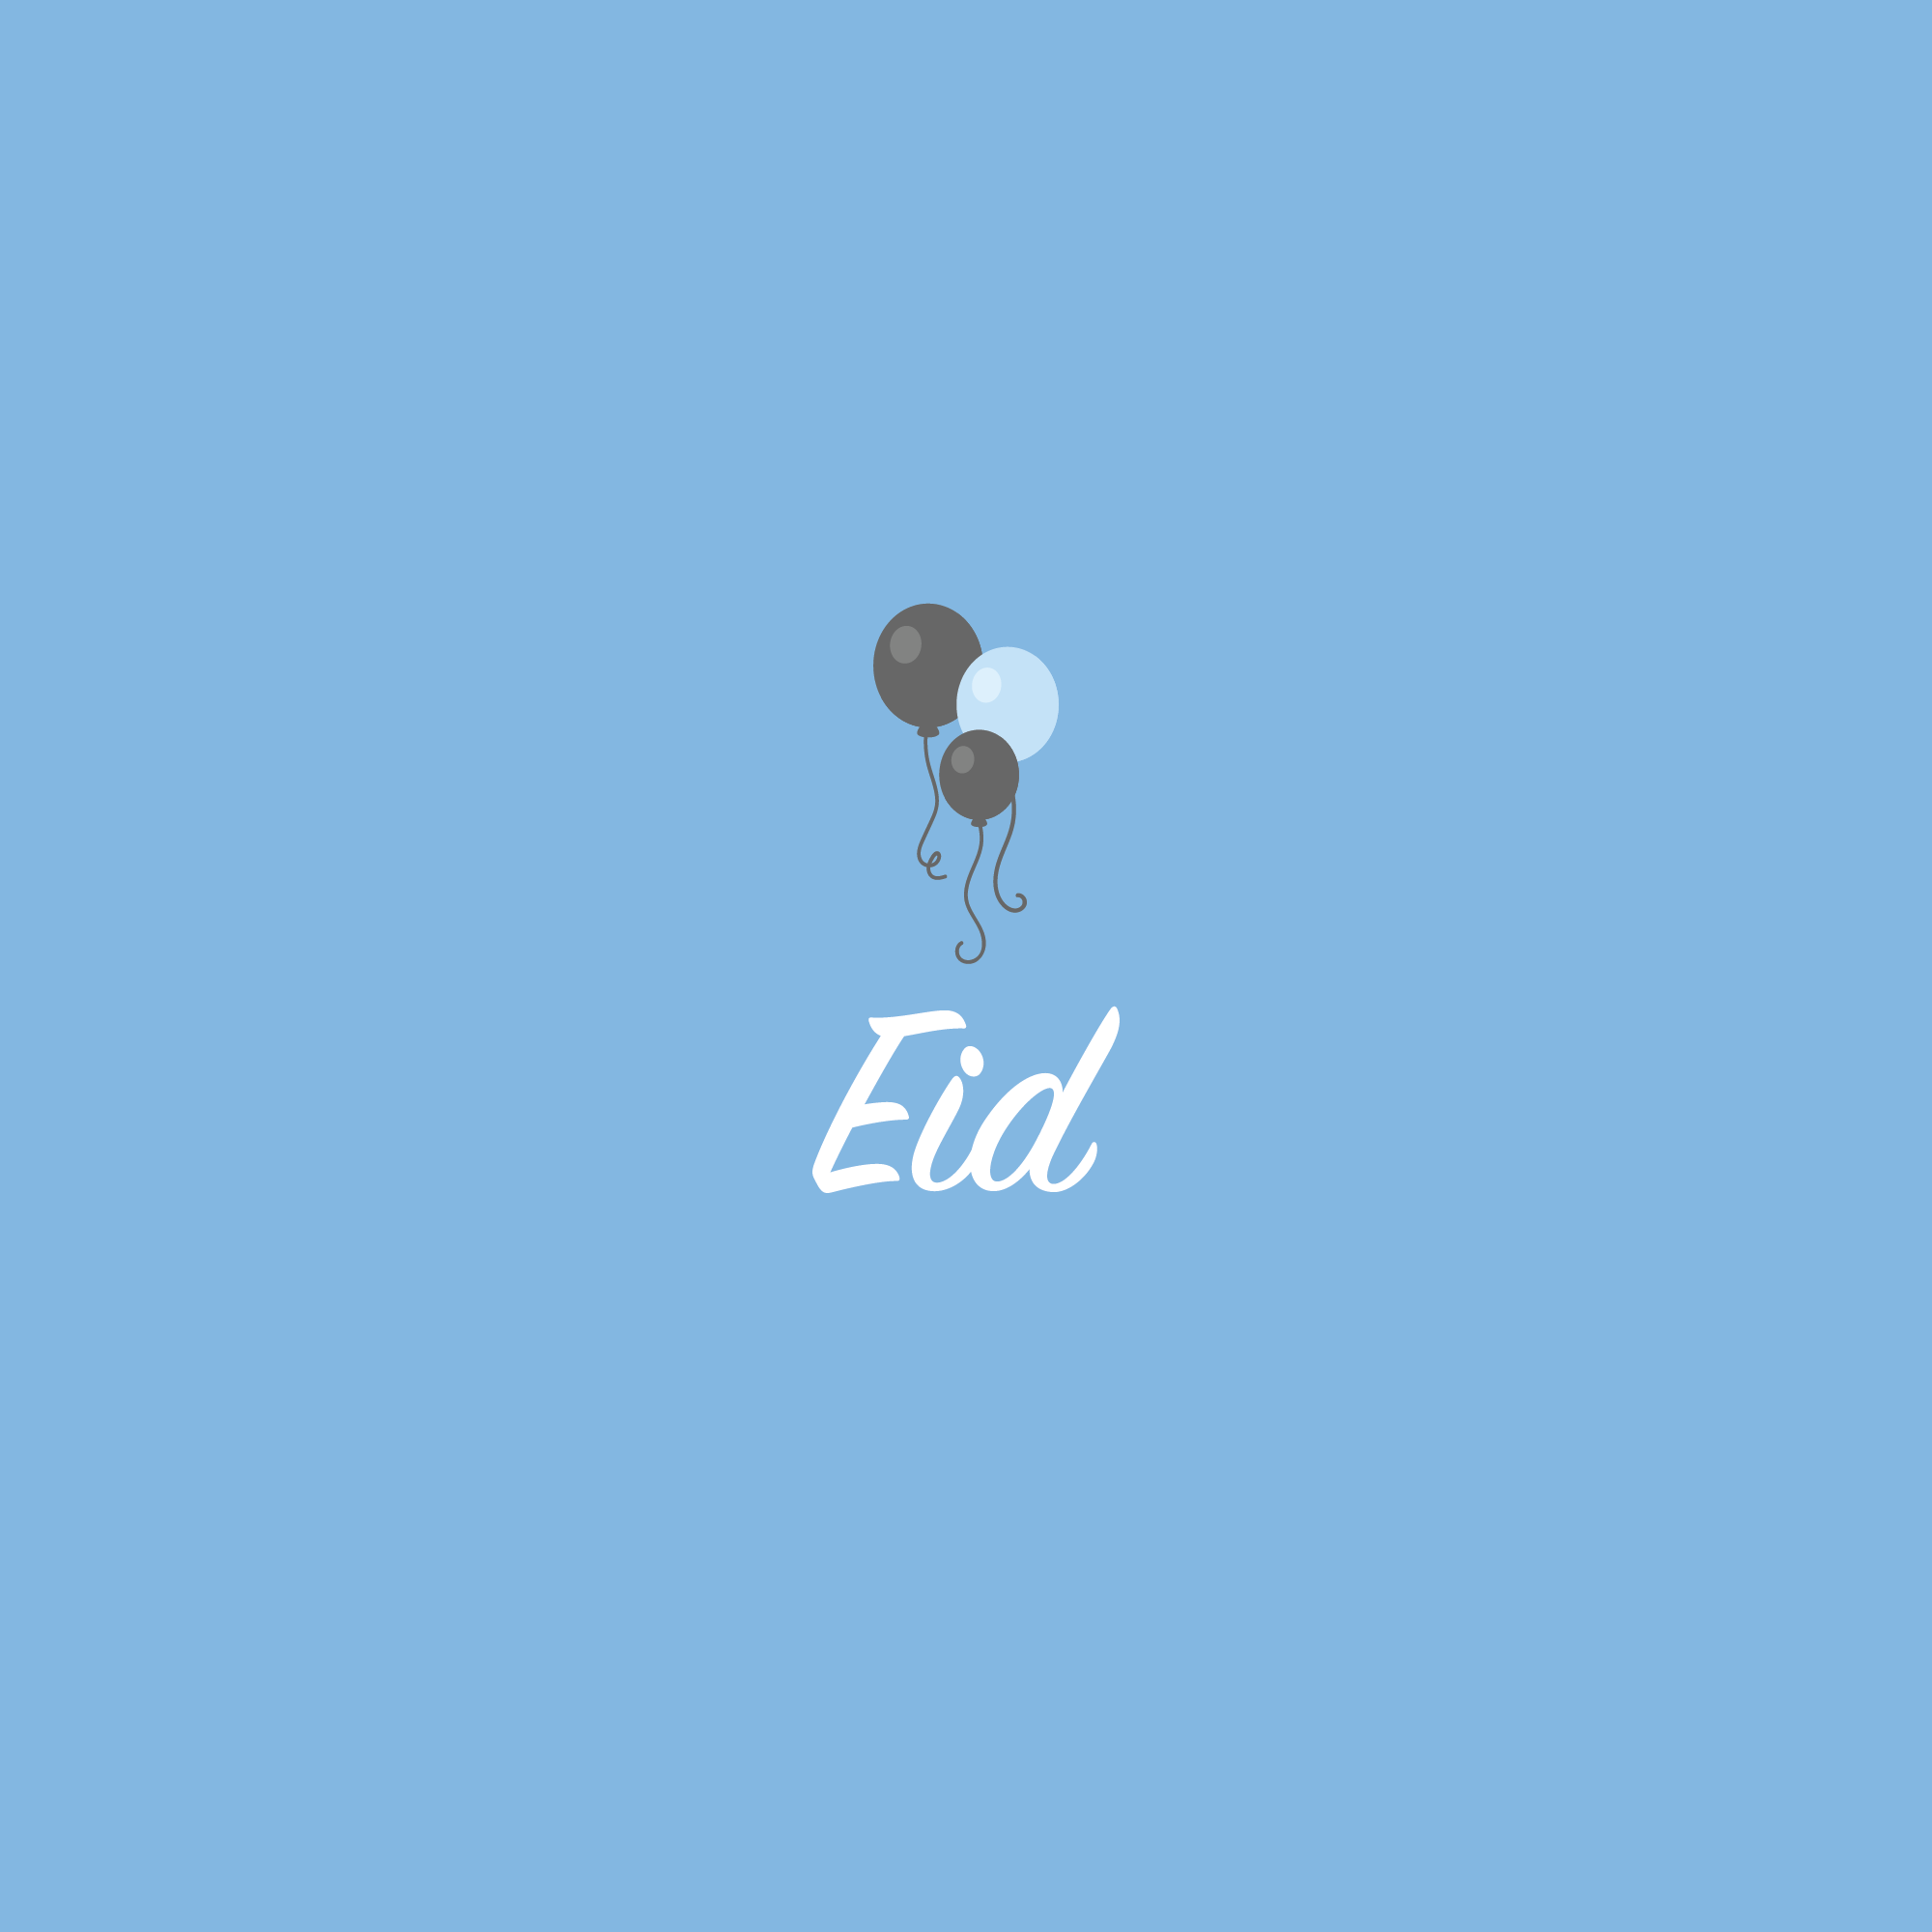 Instagram Story Cover - Eid Image